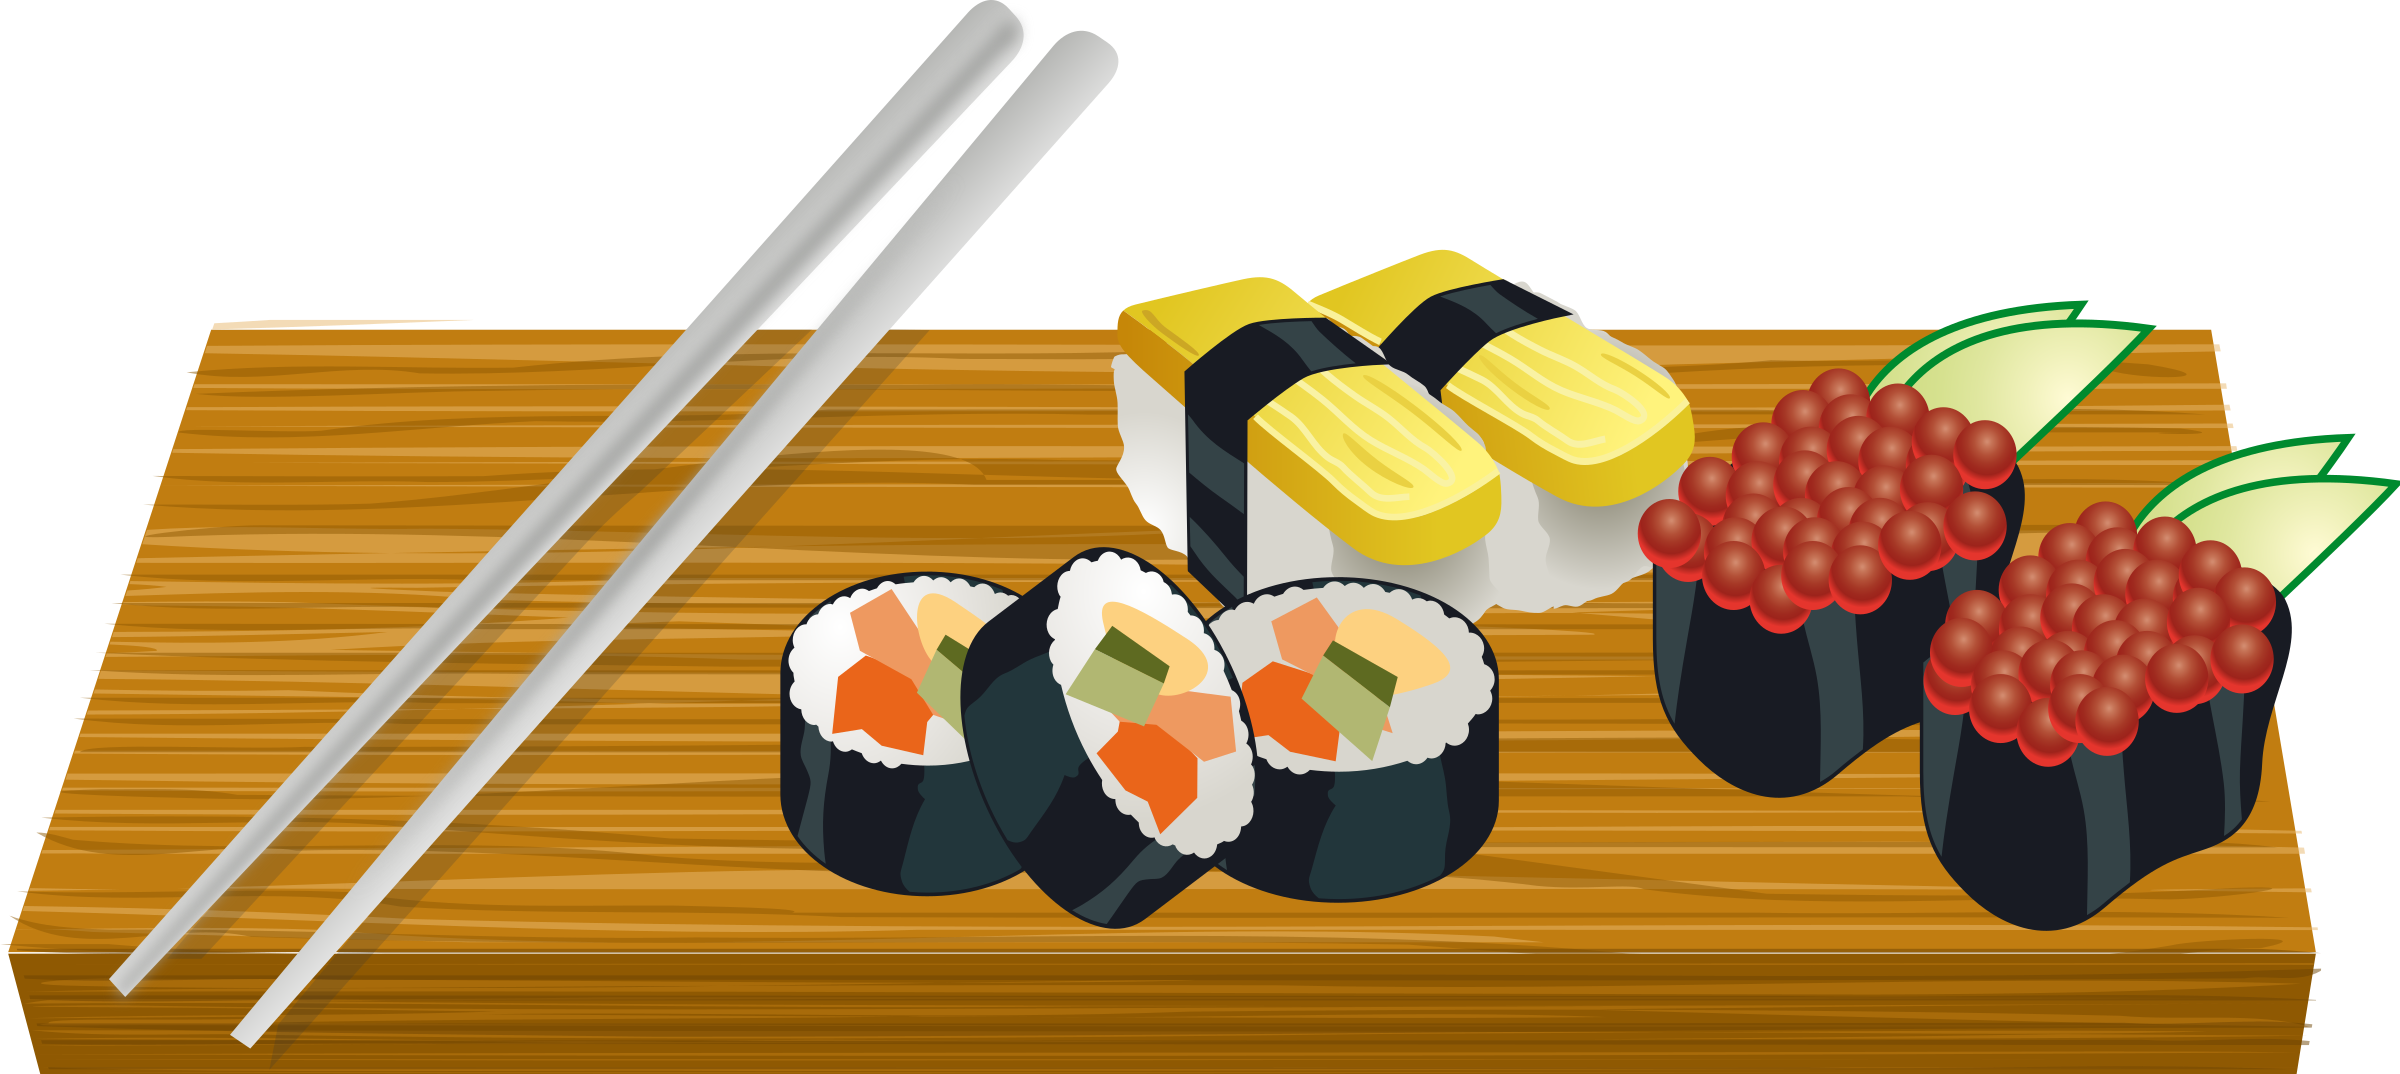 svg download Sushi clipart. On a board big